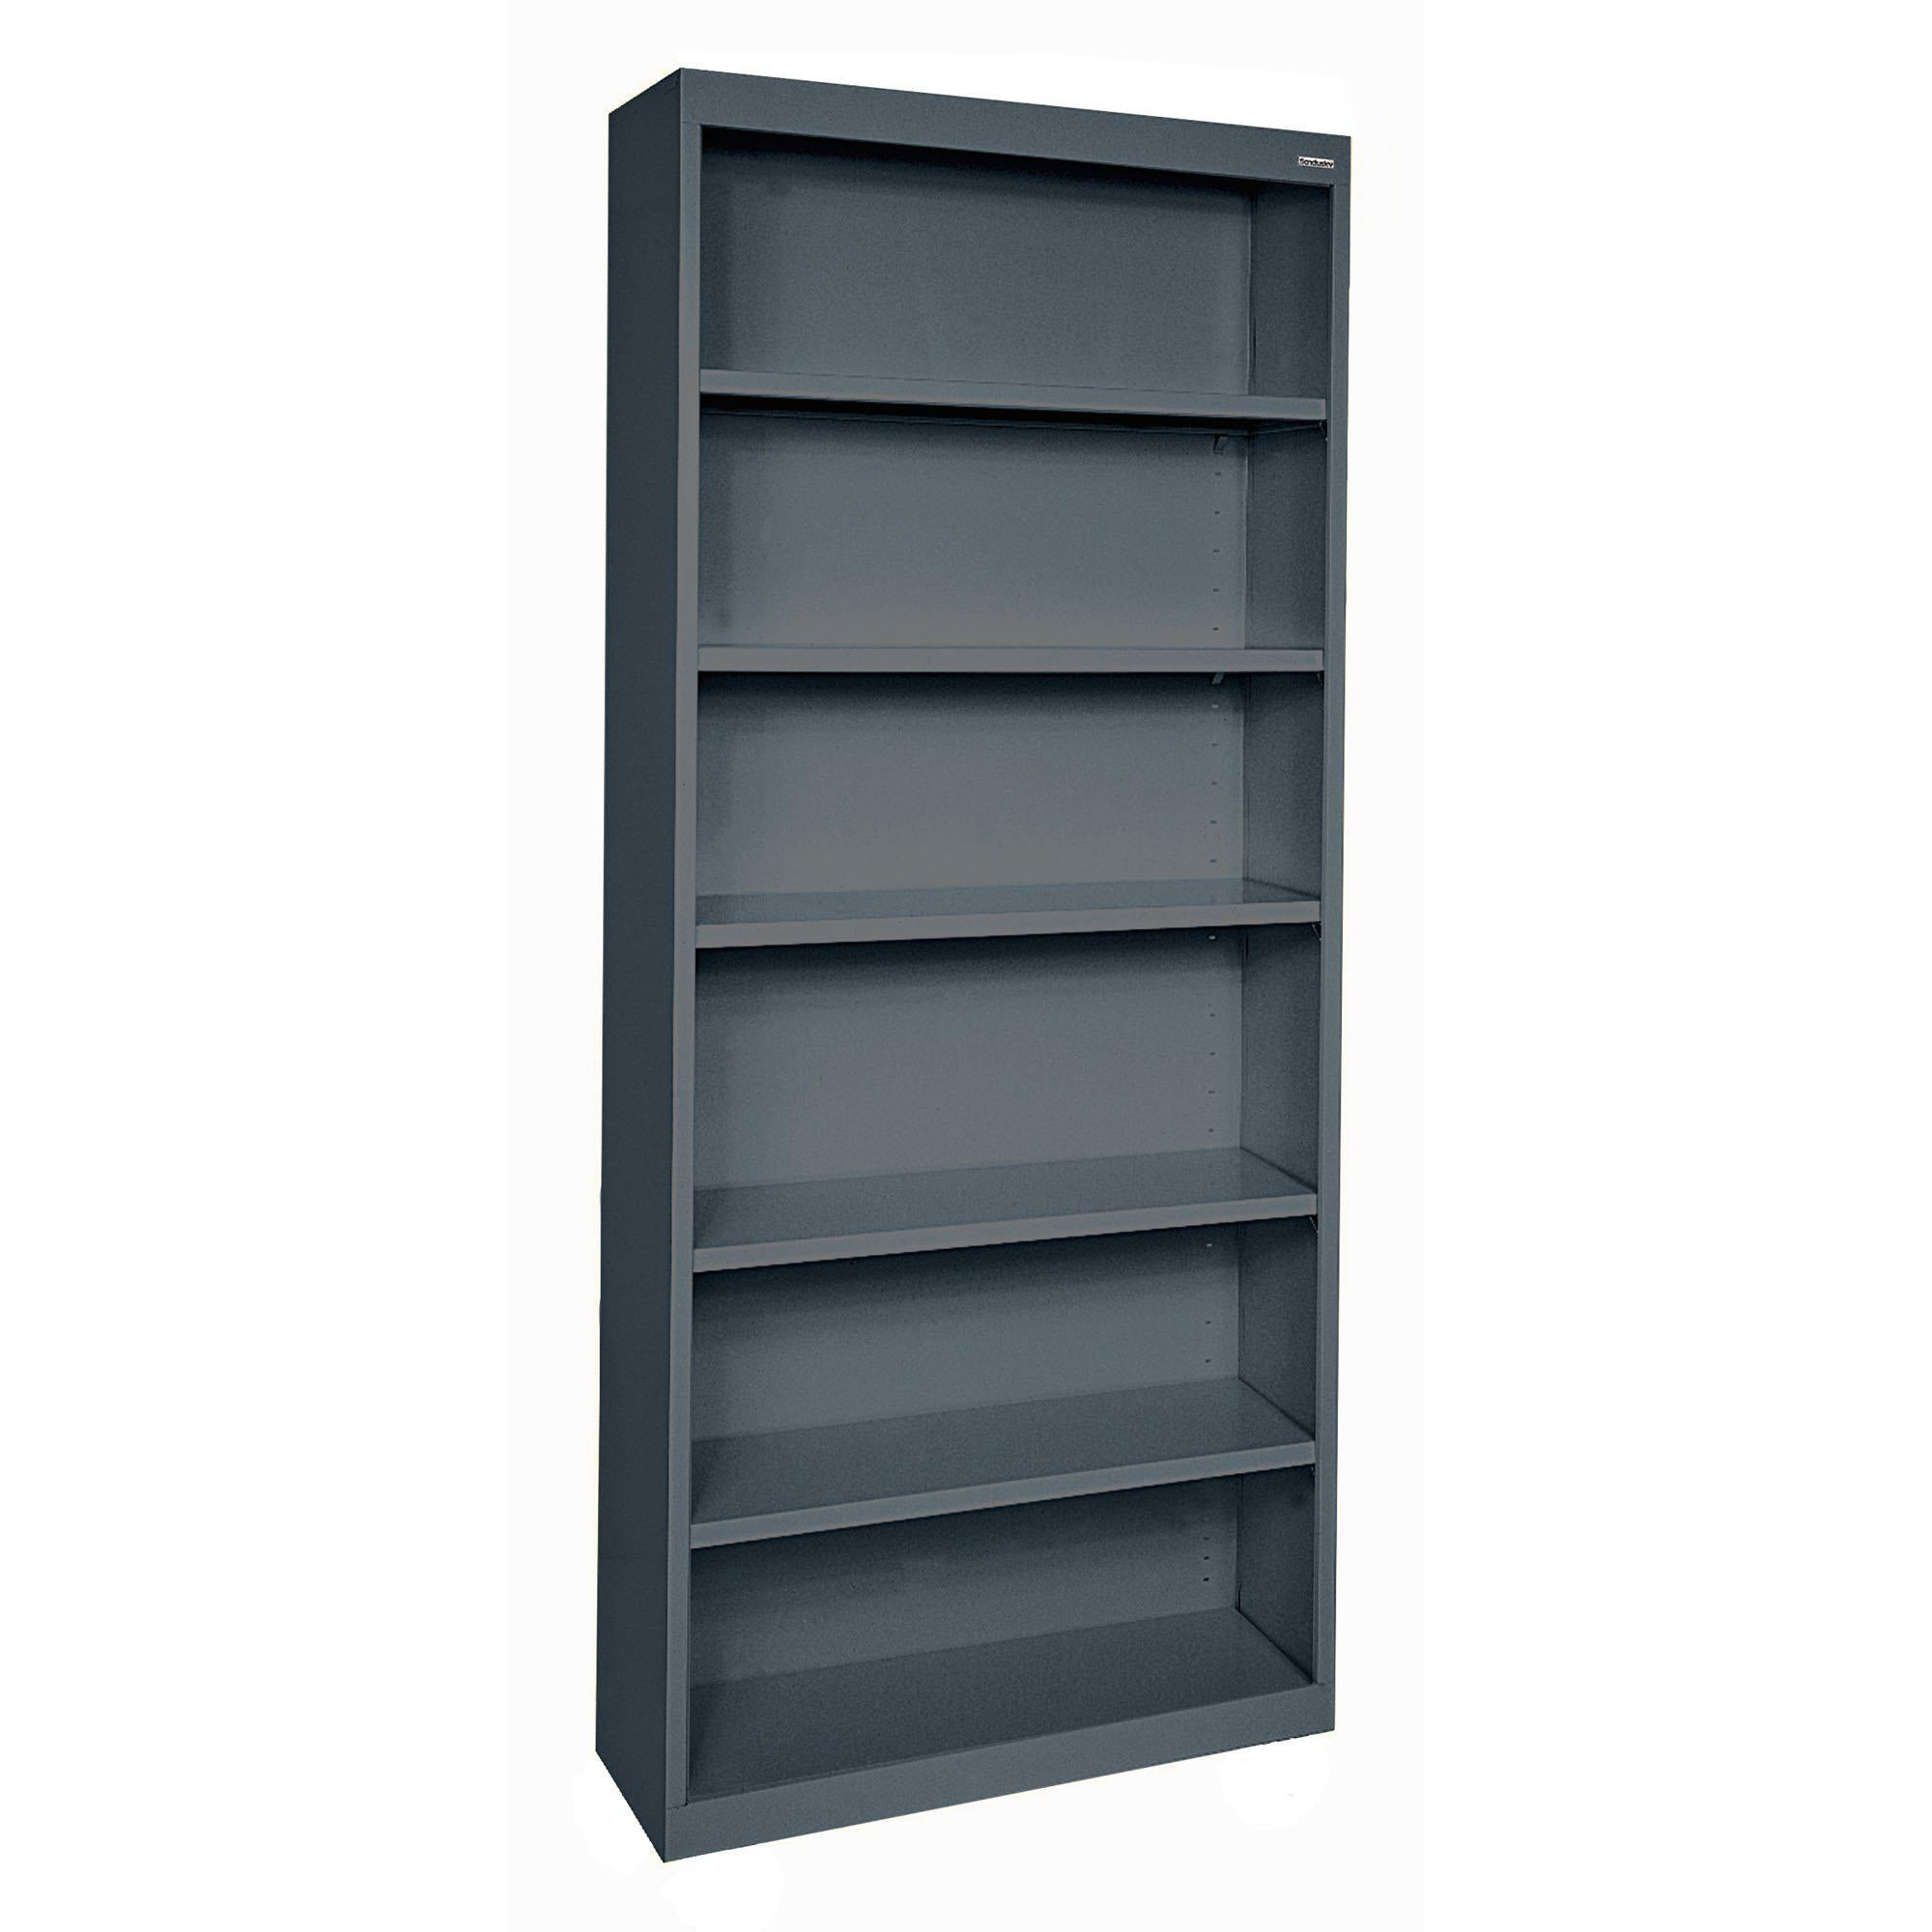 Elite Series Welded Steel Bookcase, 5 Shelves and Bottom Shelf, 34 x 12 x 82, Charcoal